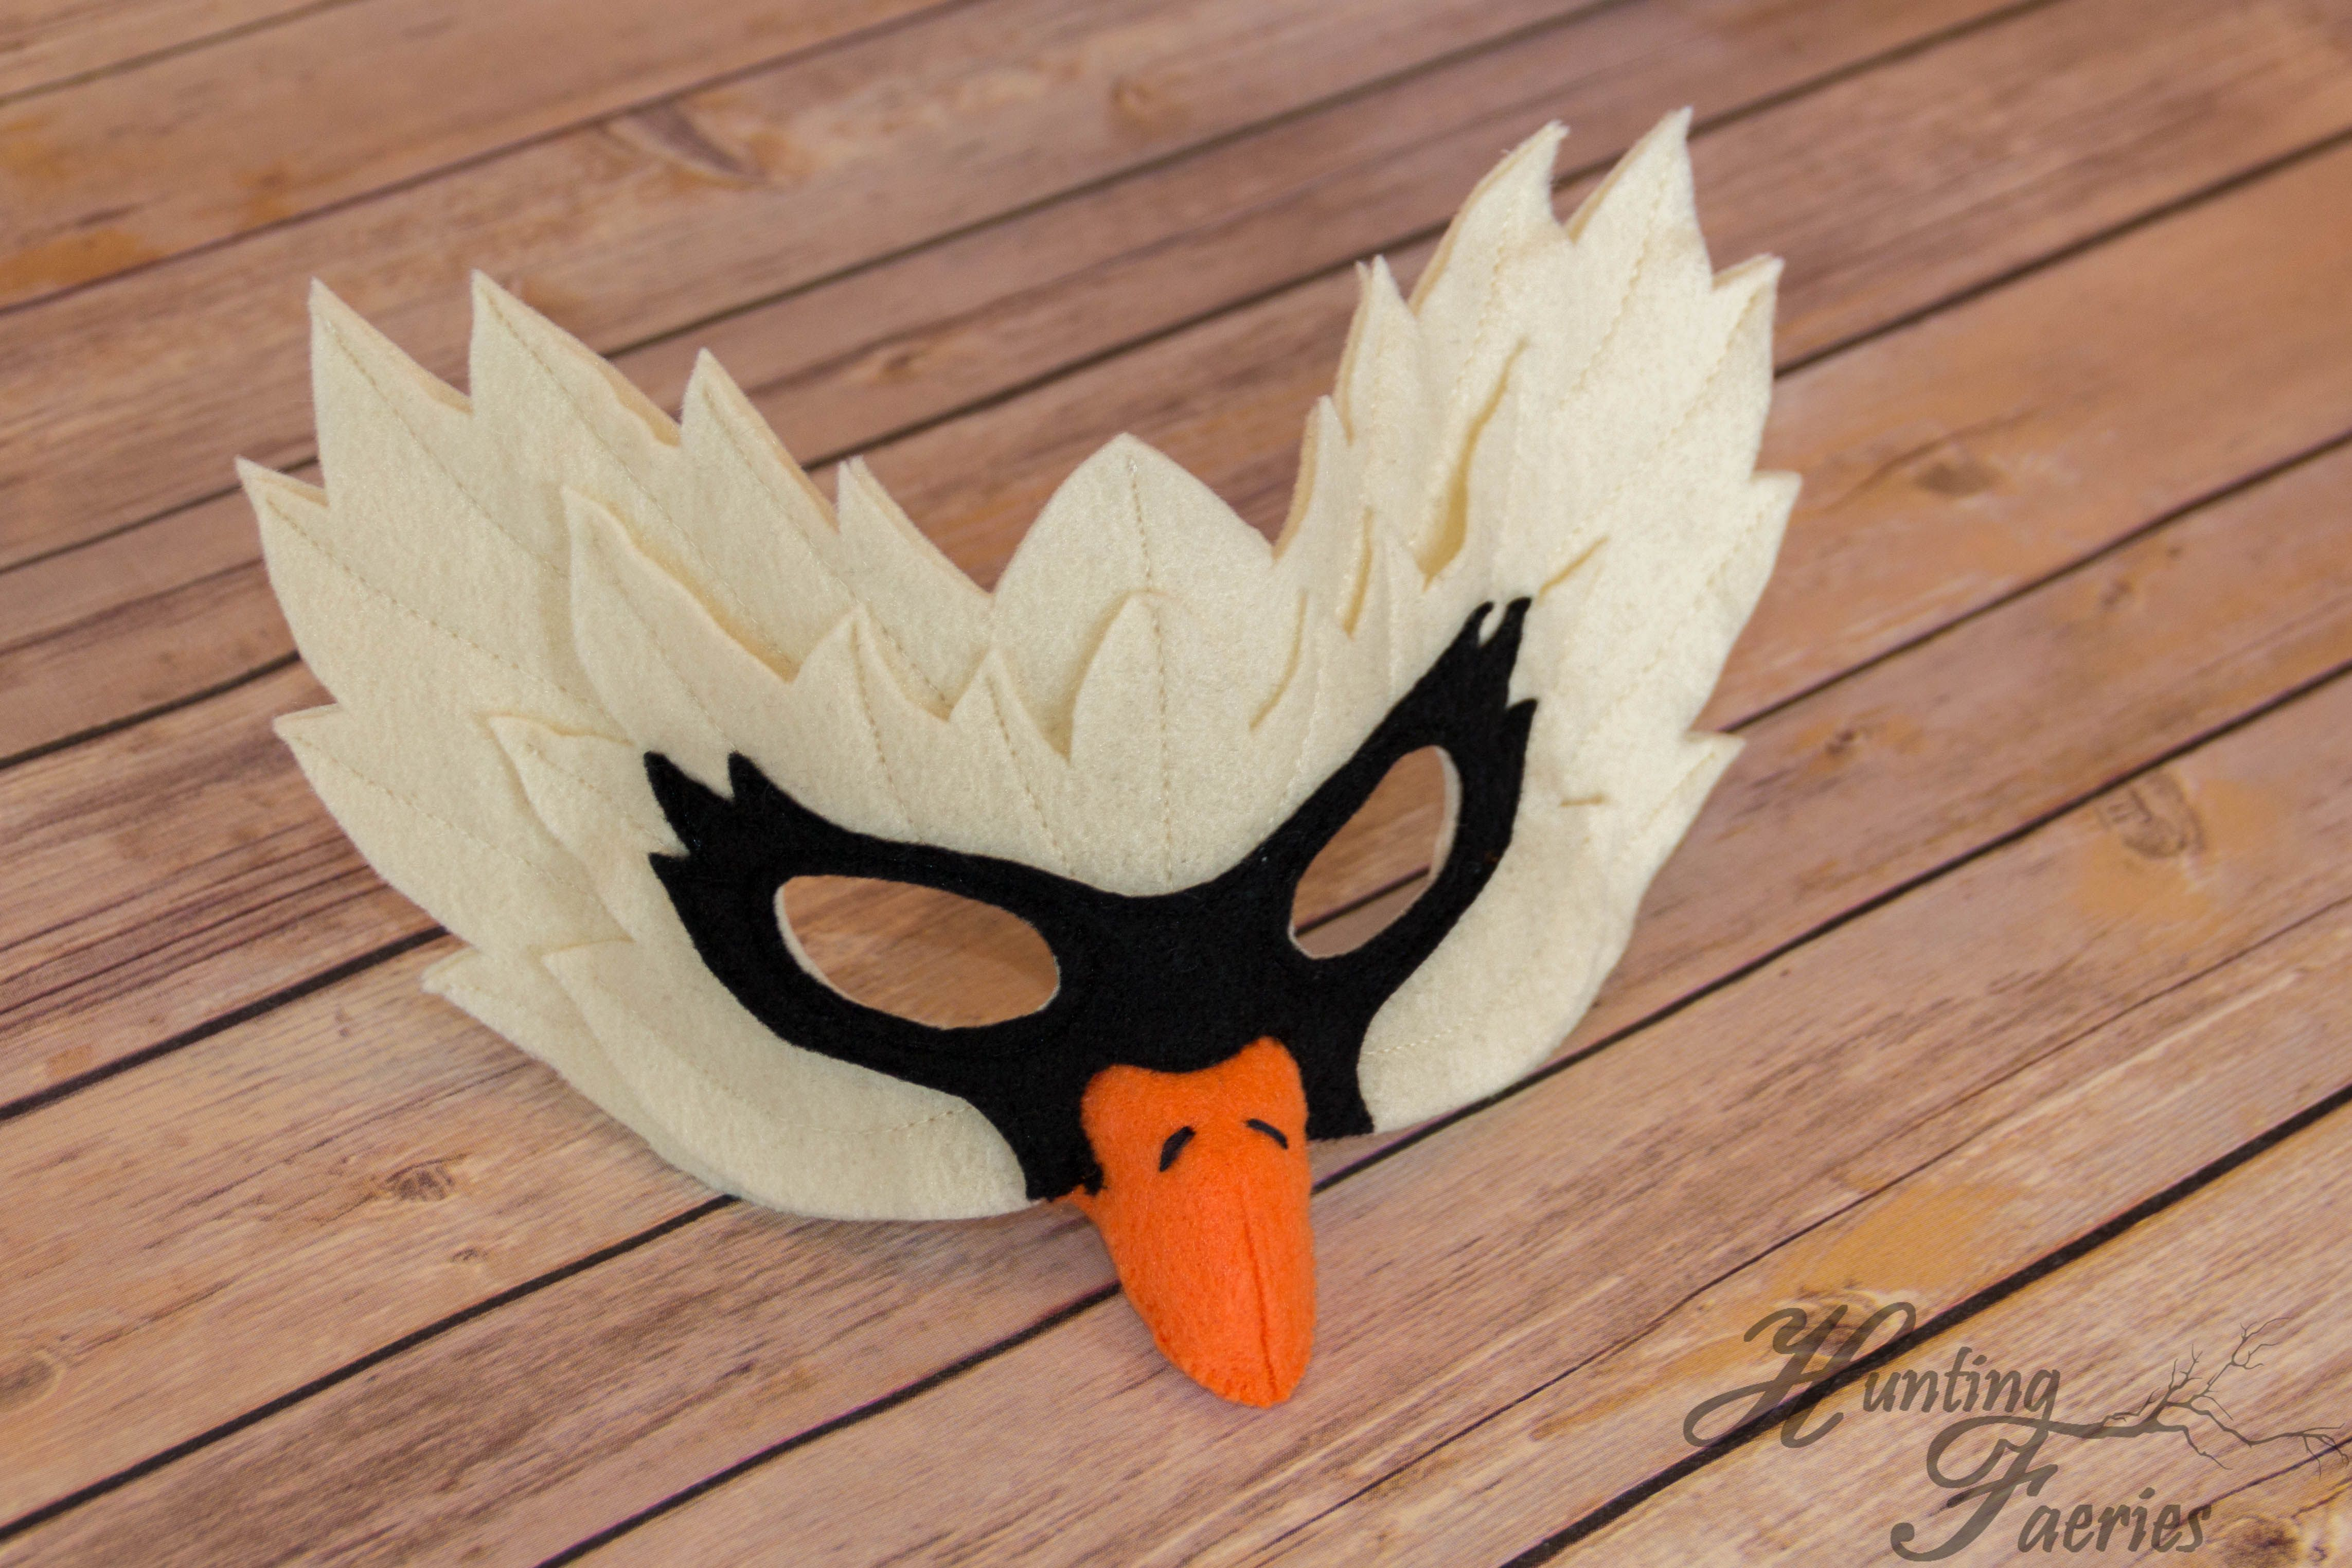 Swan Mask By Hunting Faeries On Etsy At Www Huntingfaeries Etsy